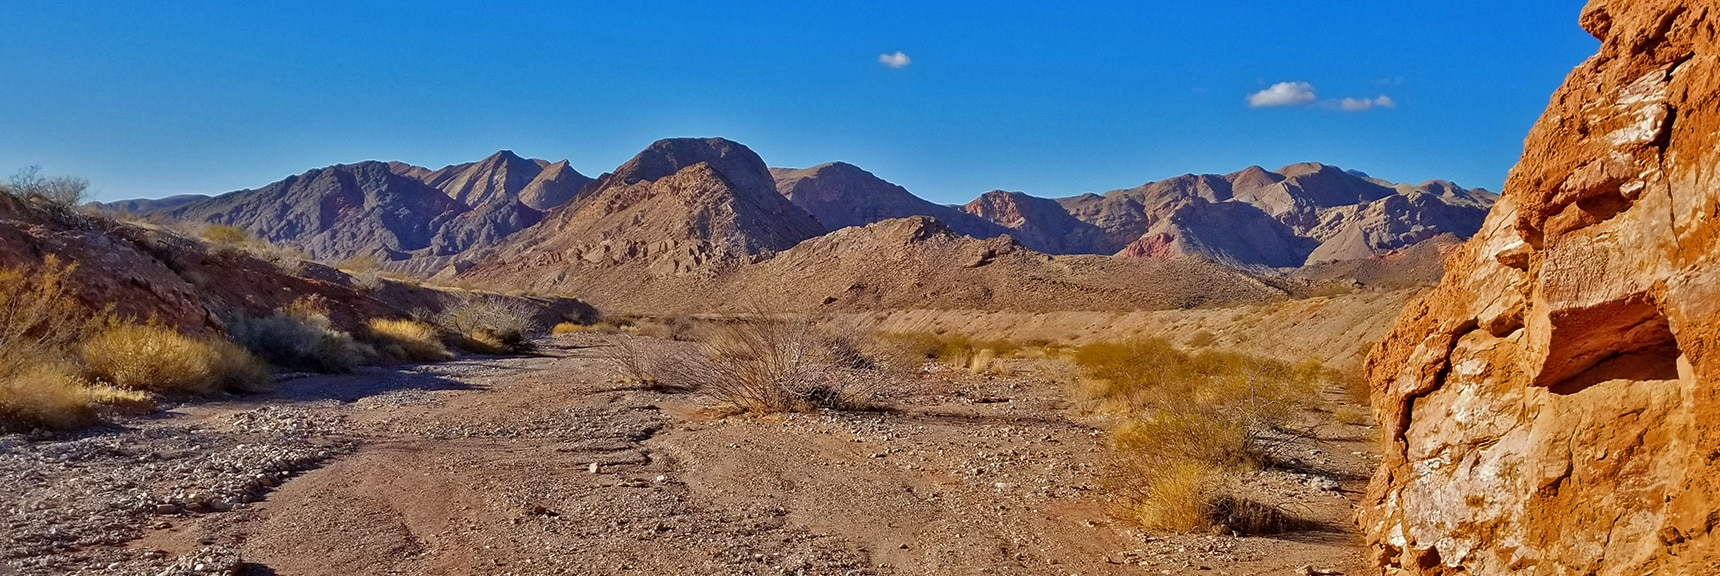 View of the Muddy Mts. as the Wash Opens Just East of Northshore Mile 18 | Hamblin Mountain, Lake Mead National Conservation Area, Nevada